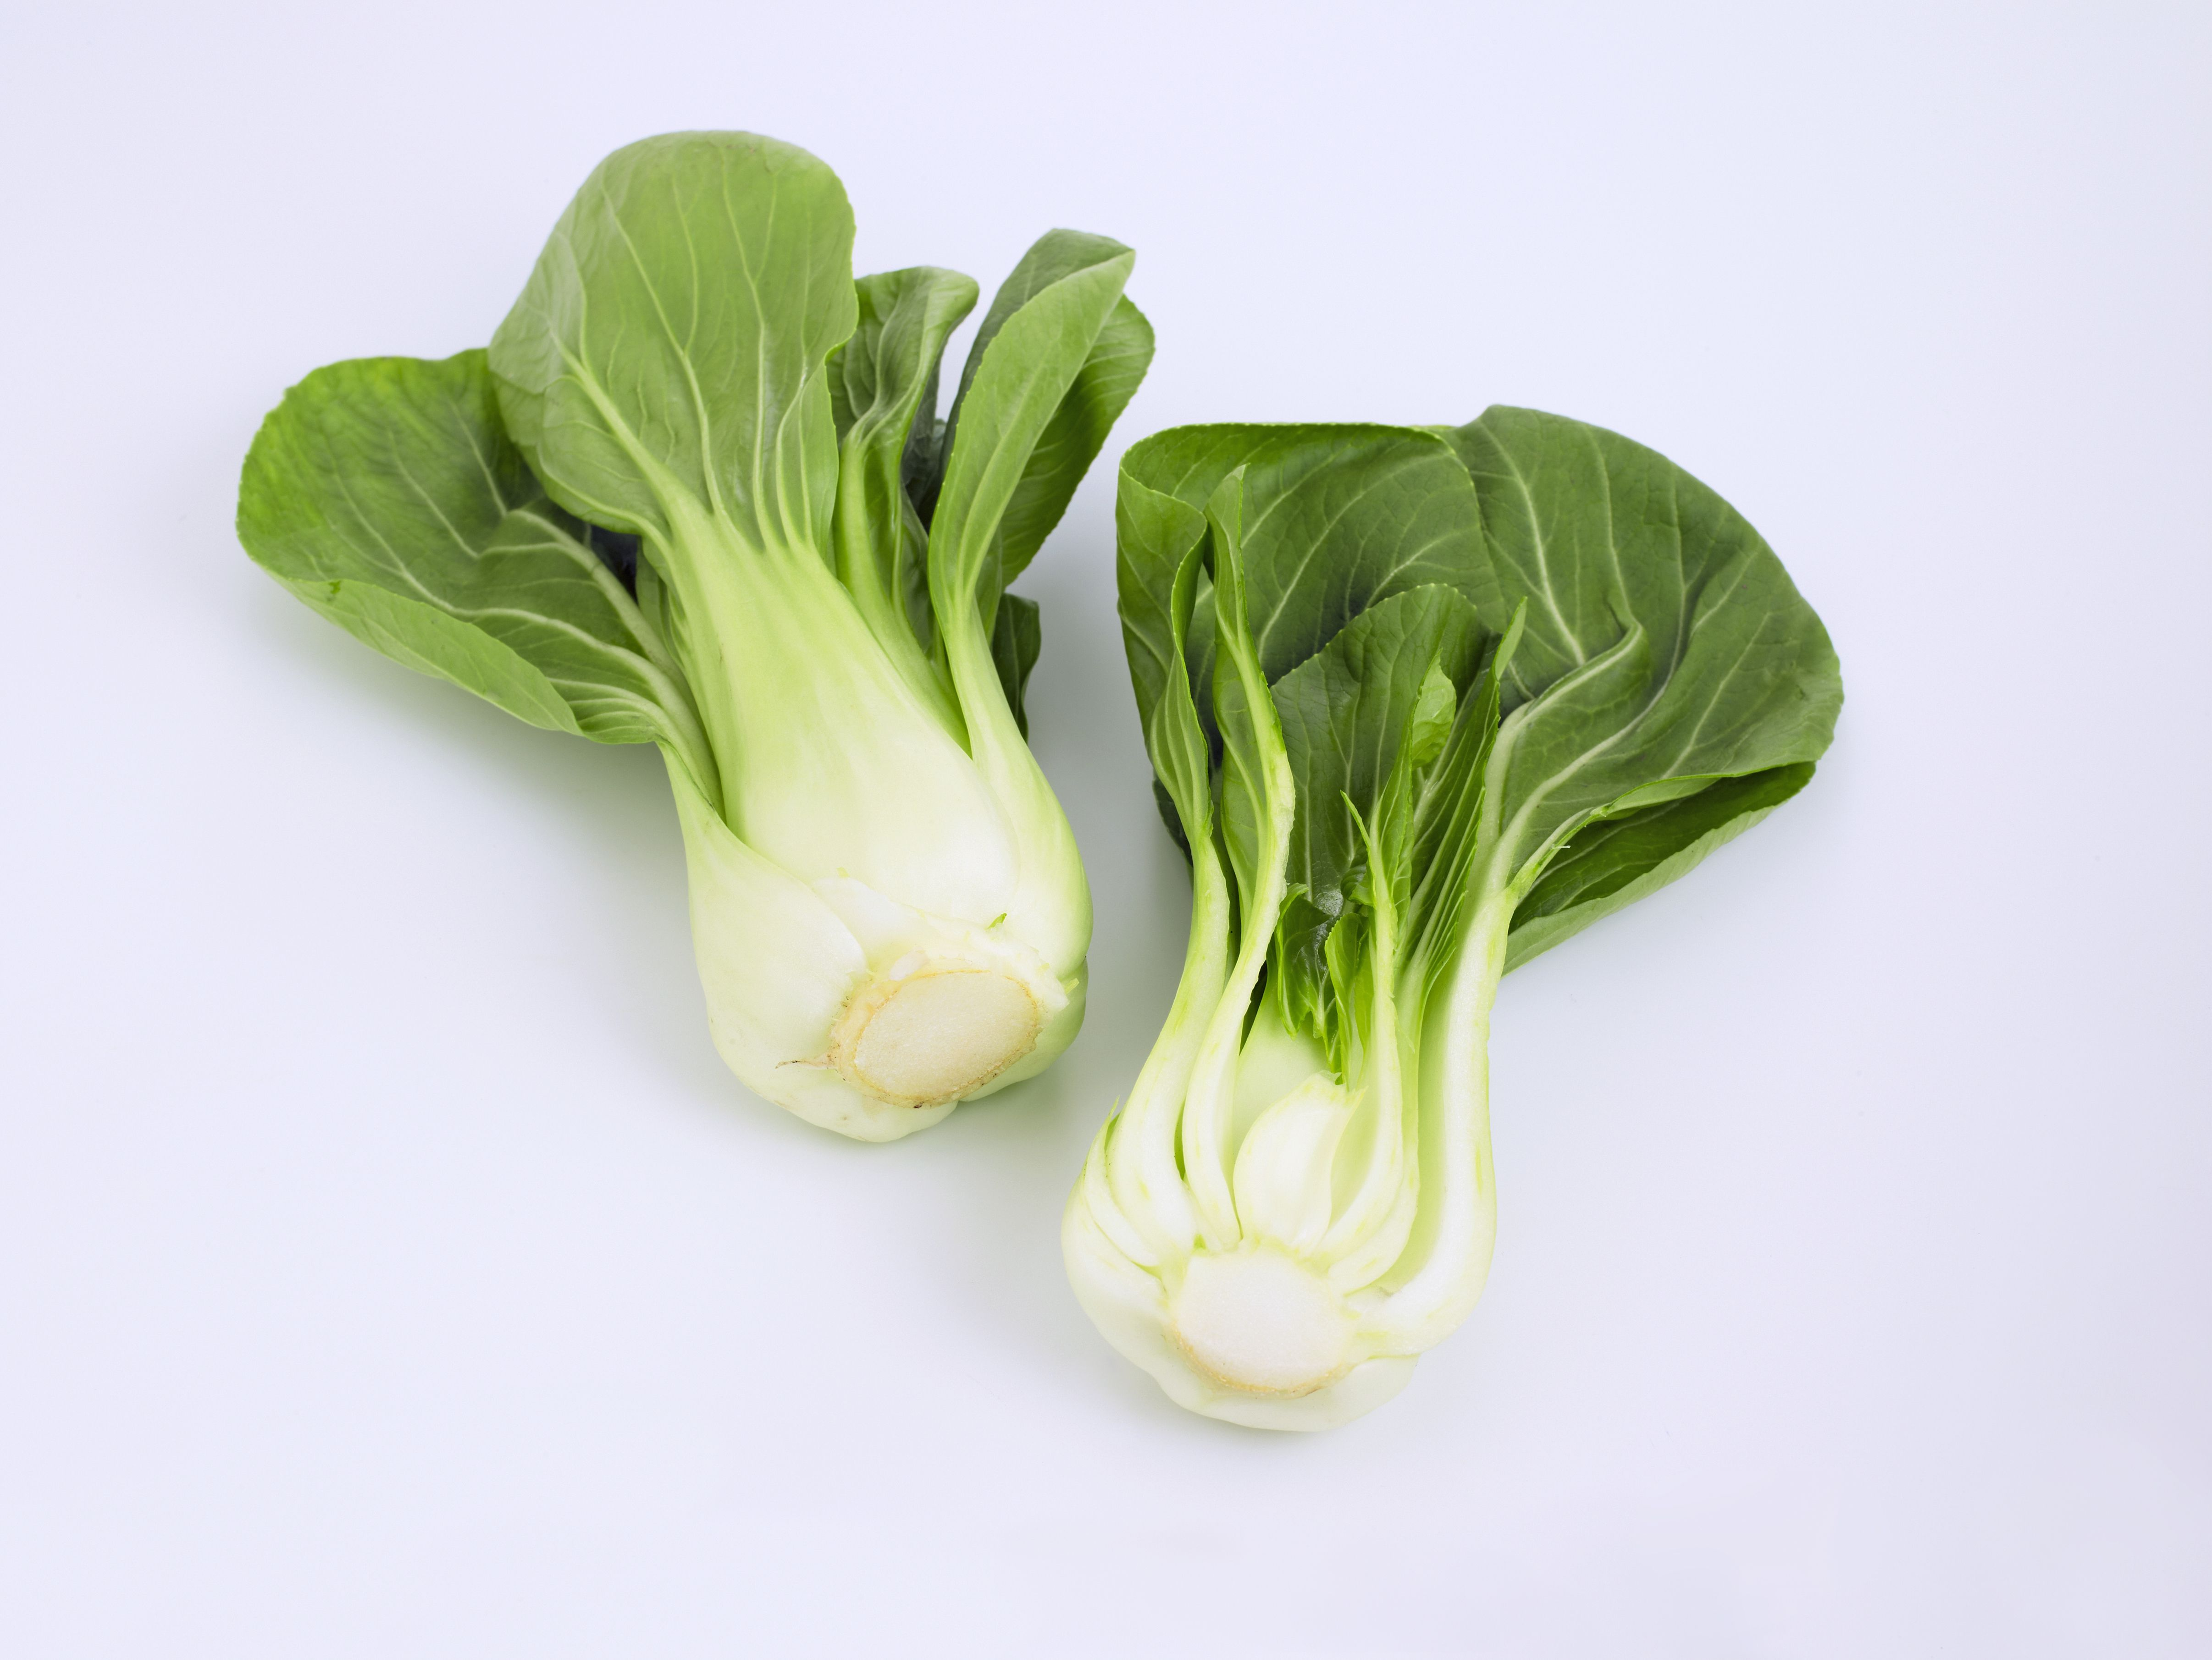 Chinese cabbage or Bok Choy (Brassica rapa)